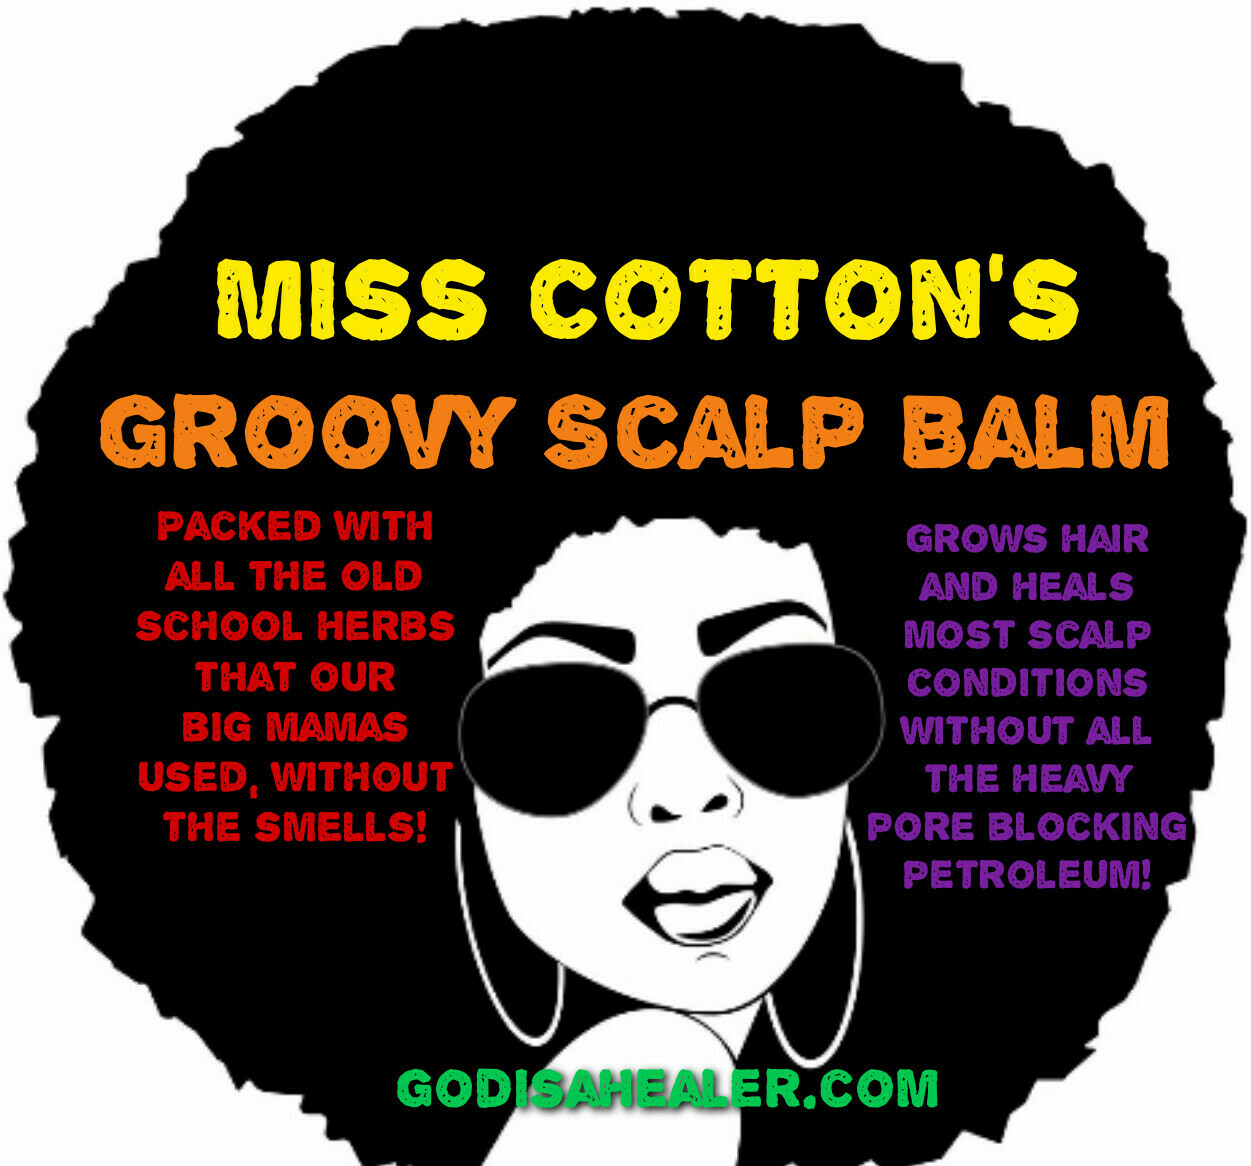 Hair Grease Groovy Scalp Balm 8oz Heals most scalp conditions, promotes hair growth. Old fashioned herbs from a family recipe that has proven results!